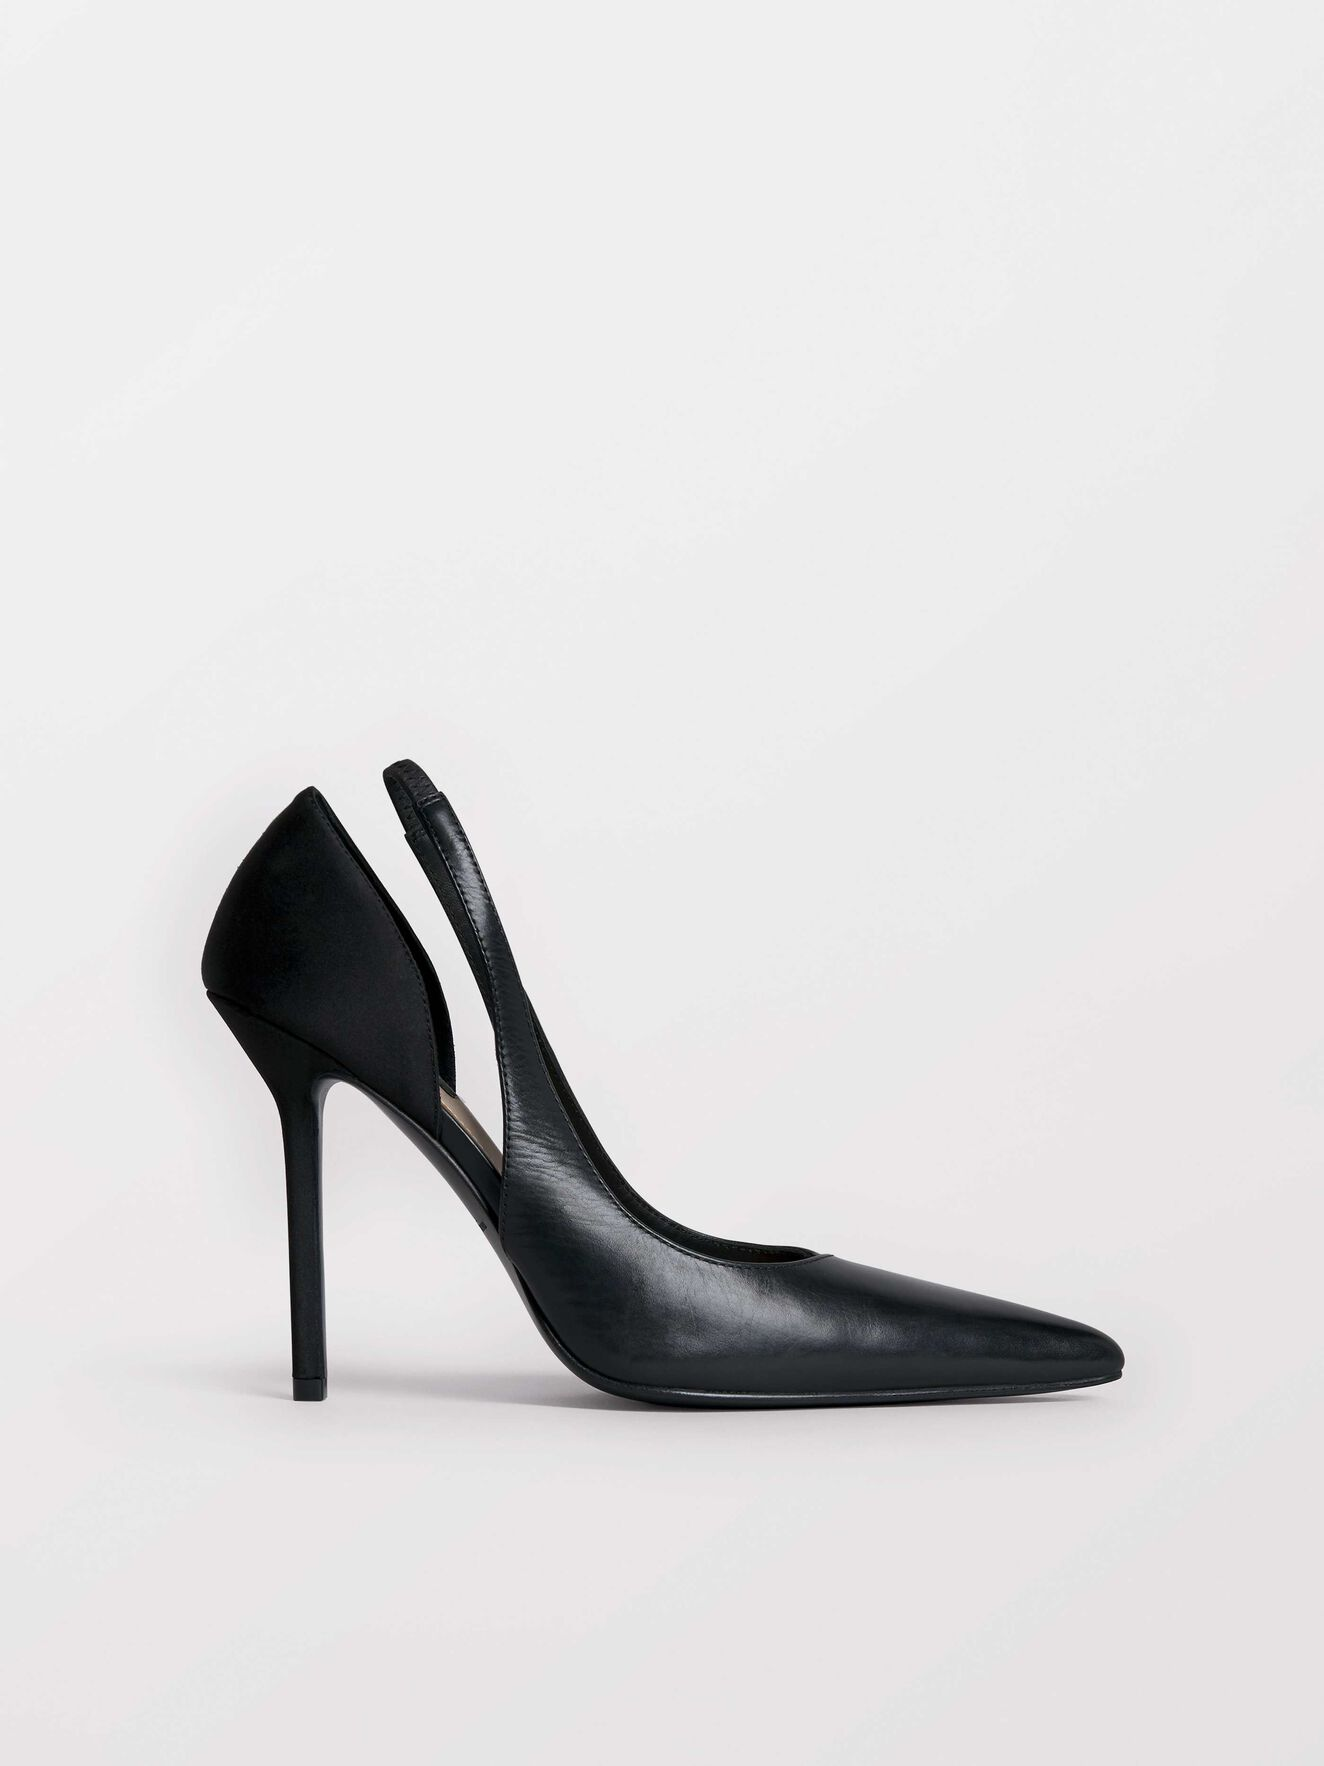 Slingata Pumps in Black from Tiger of Sweden